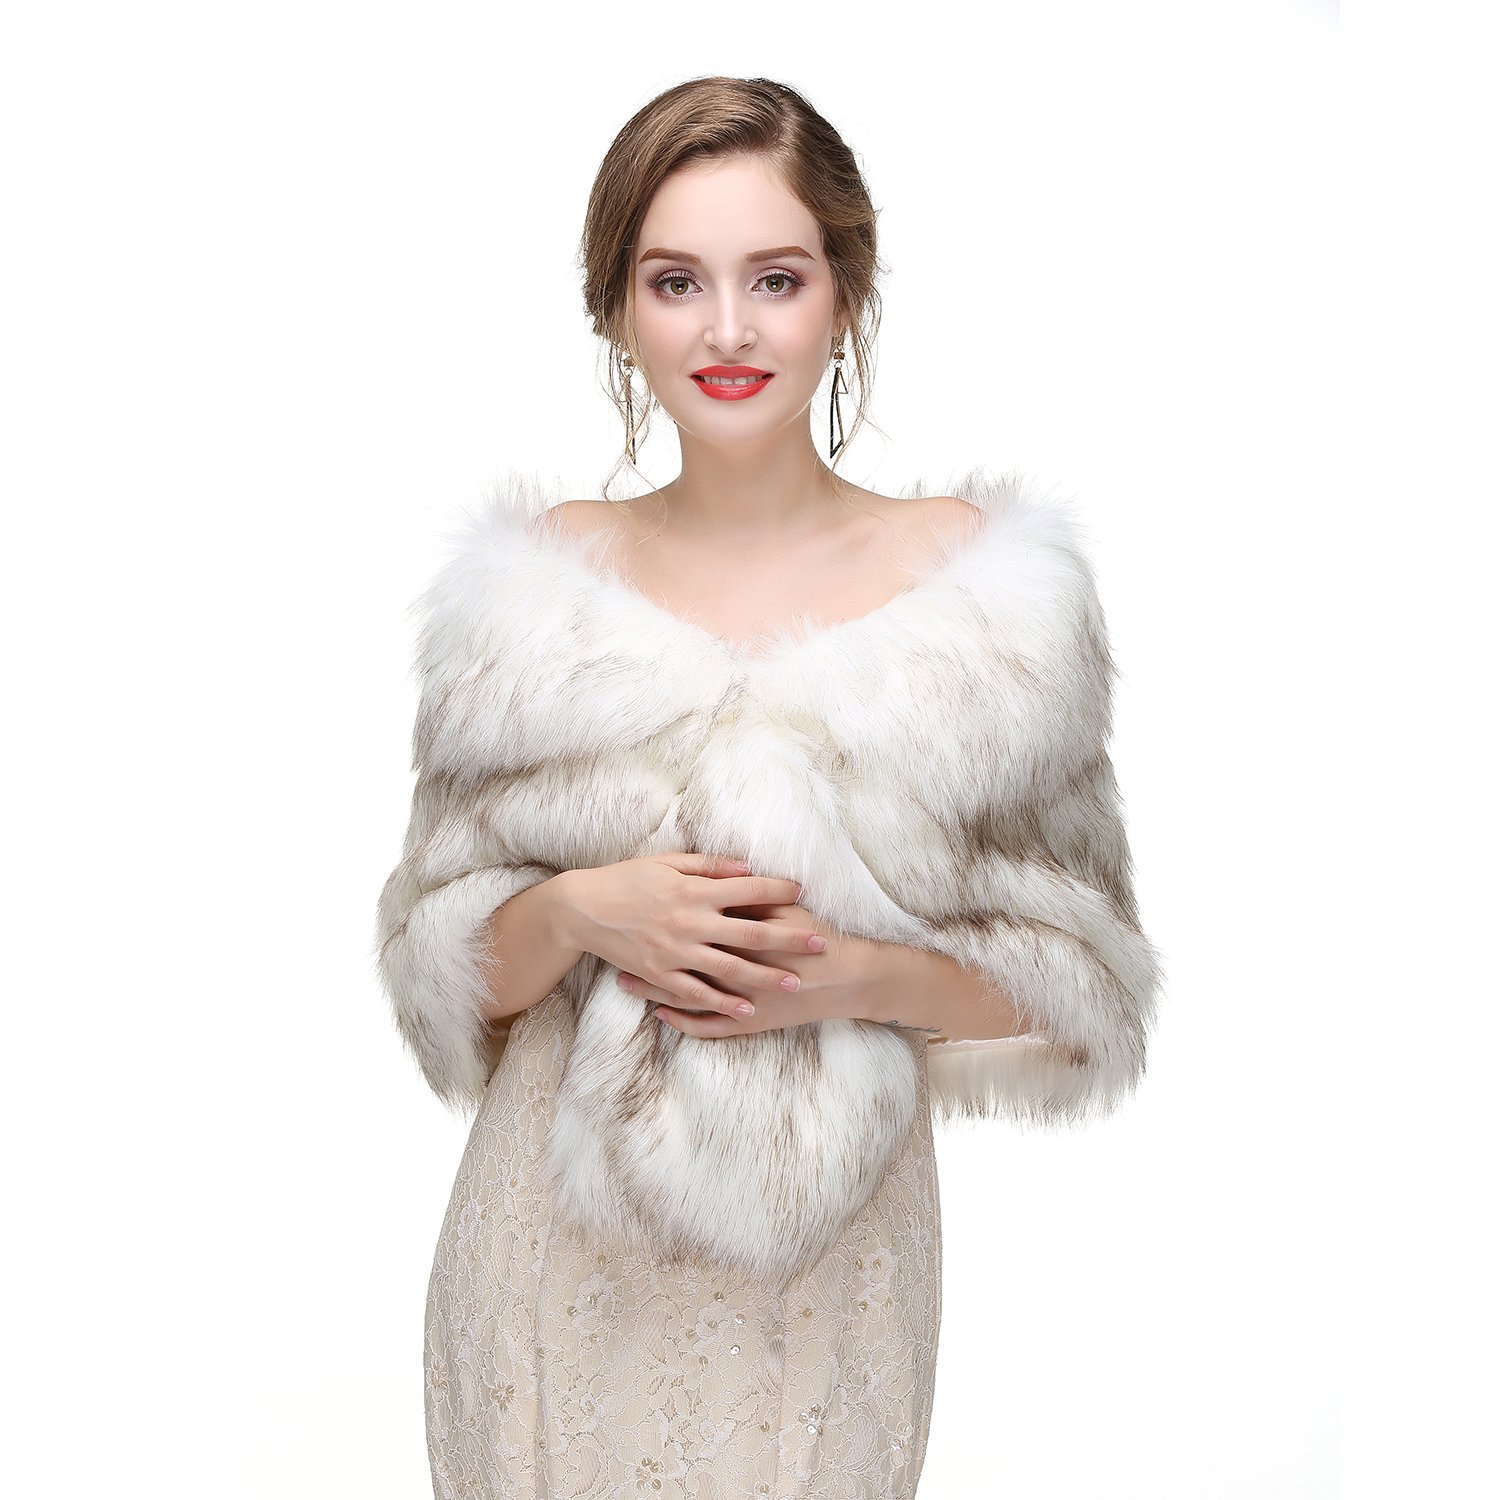 Leyidress Wedding Women Faux Fox Fur Wraps Shawls Stoles Cape Shrug for Bridal Evening Party by Leyidress